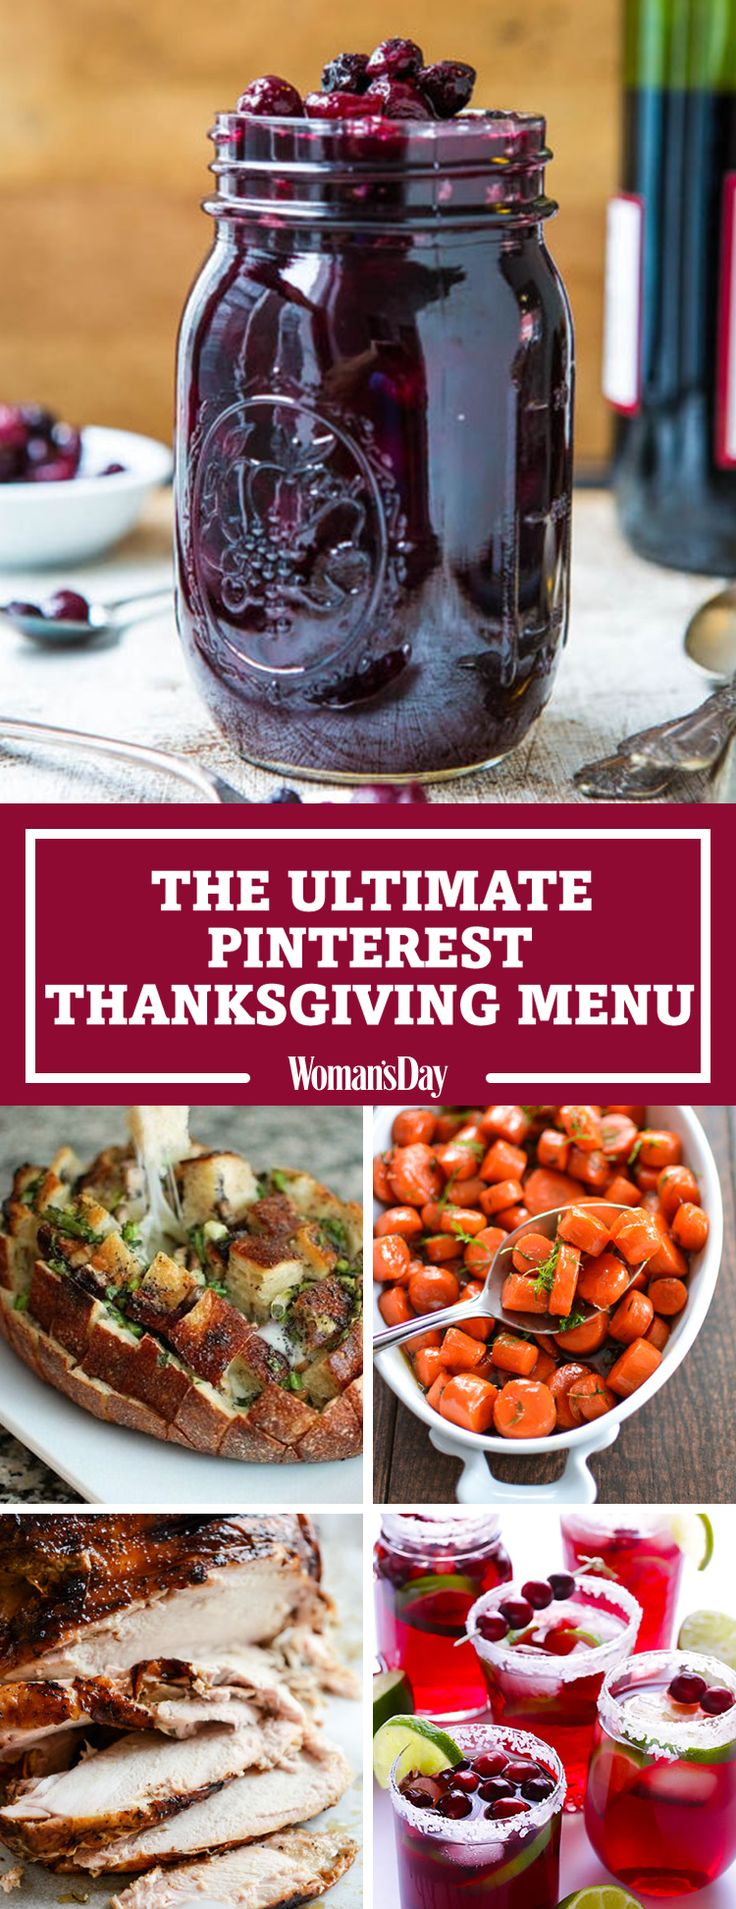 Feast your eyes on the 30 most popular Thanksgiving recipes on Pinterest.